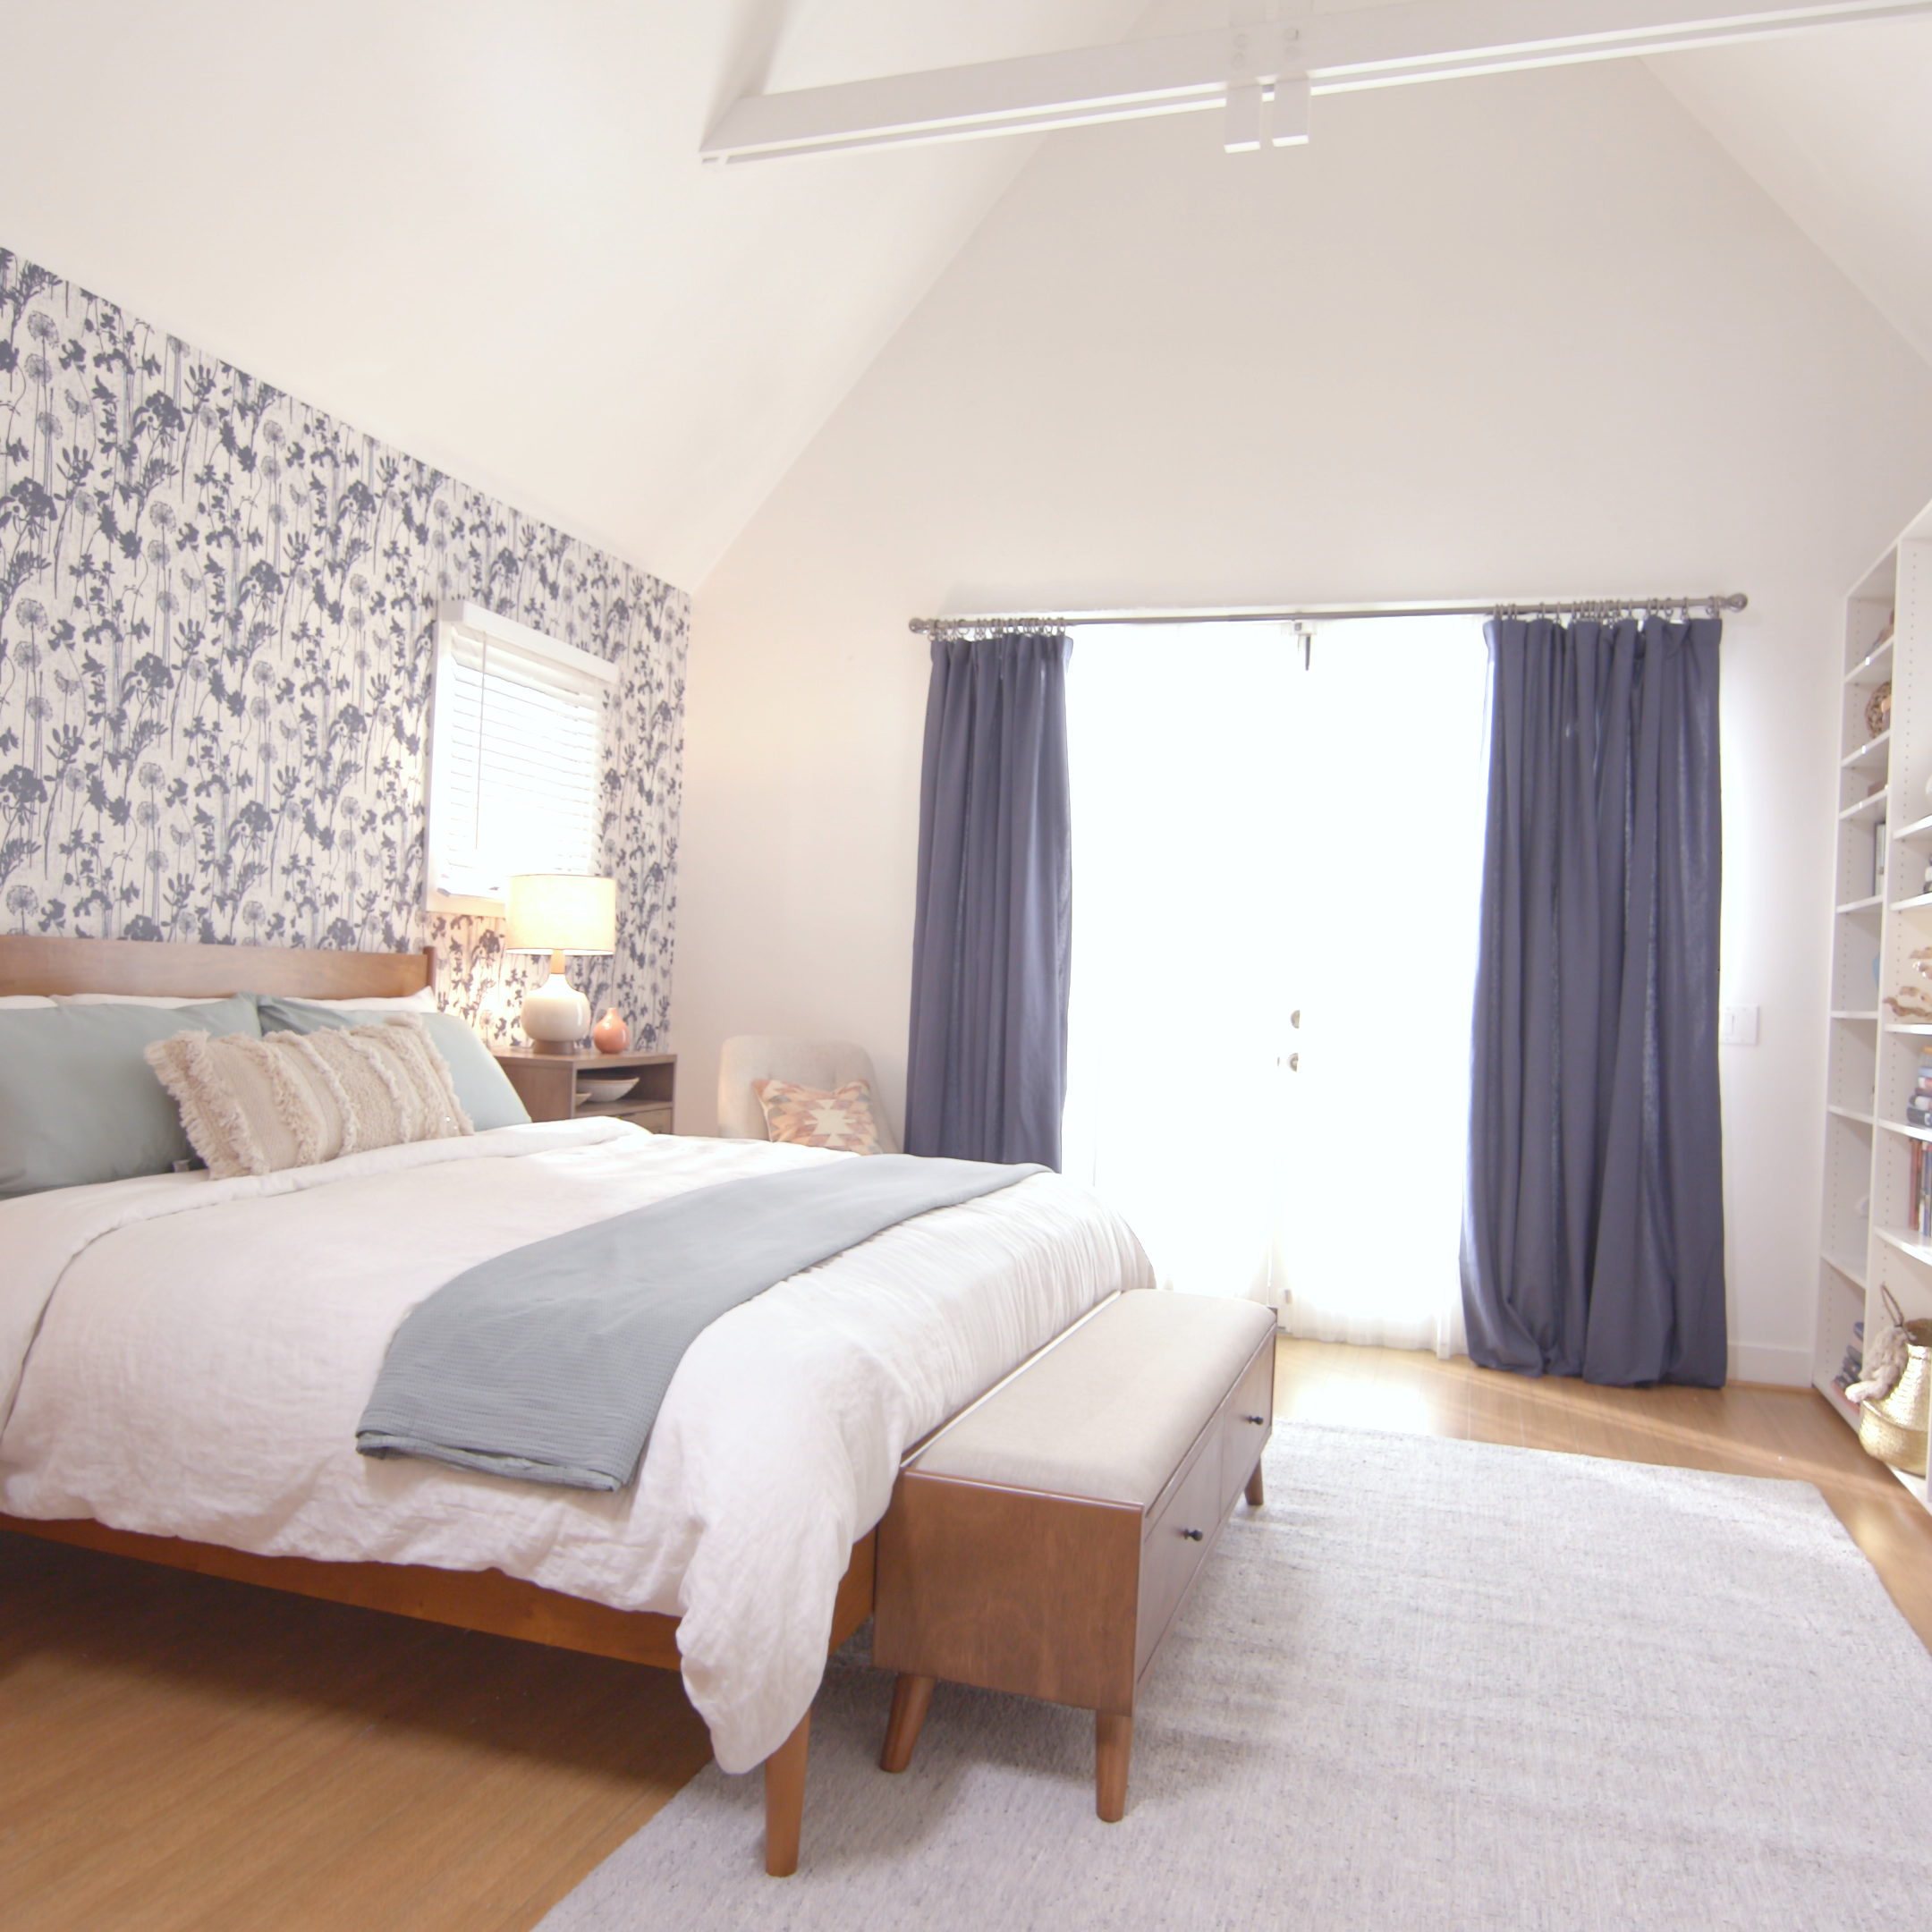 how can you add some pep to a plain vanilla bedroom